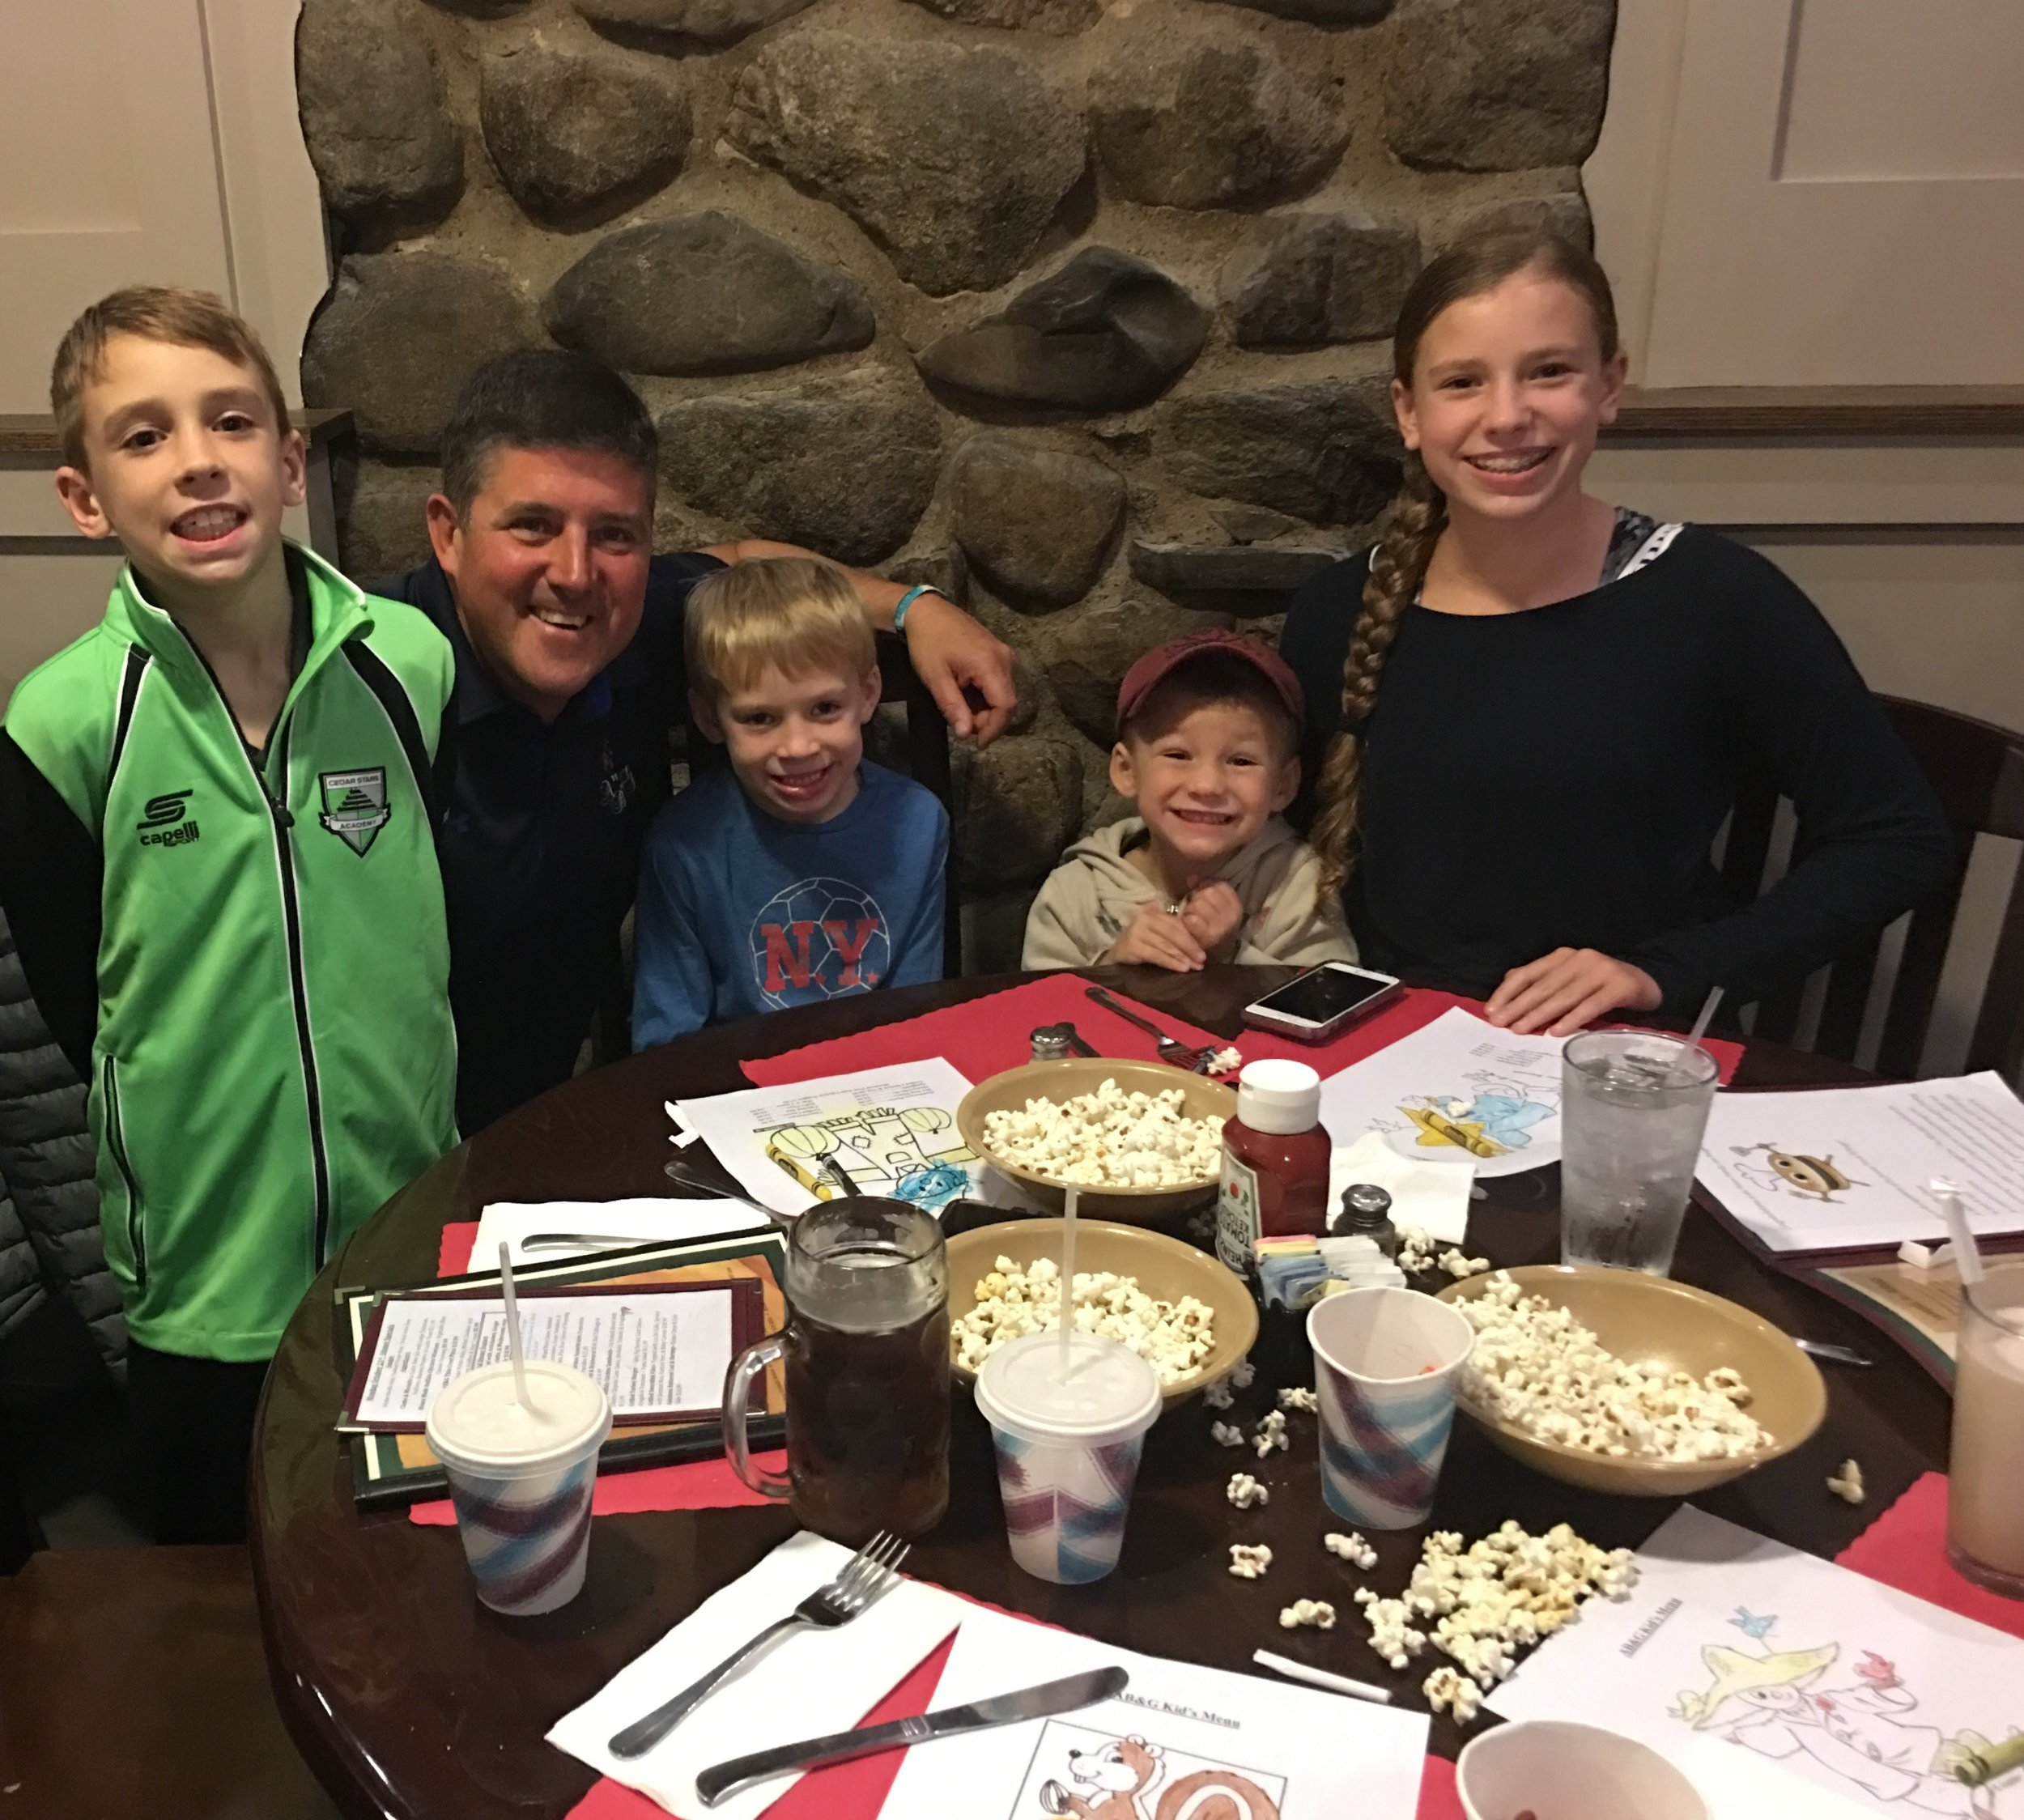 Our Burger of the Week winner, Drew Petrow and siblings, enjoyed AFEE's Community Night Out in the company of Chris Kunisch